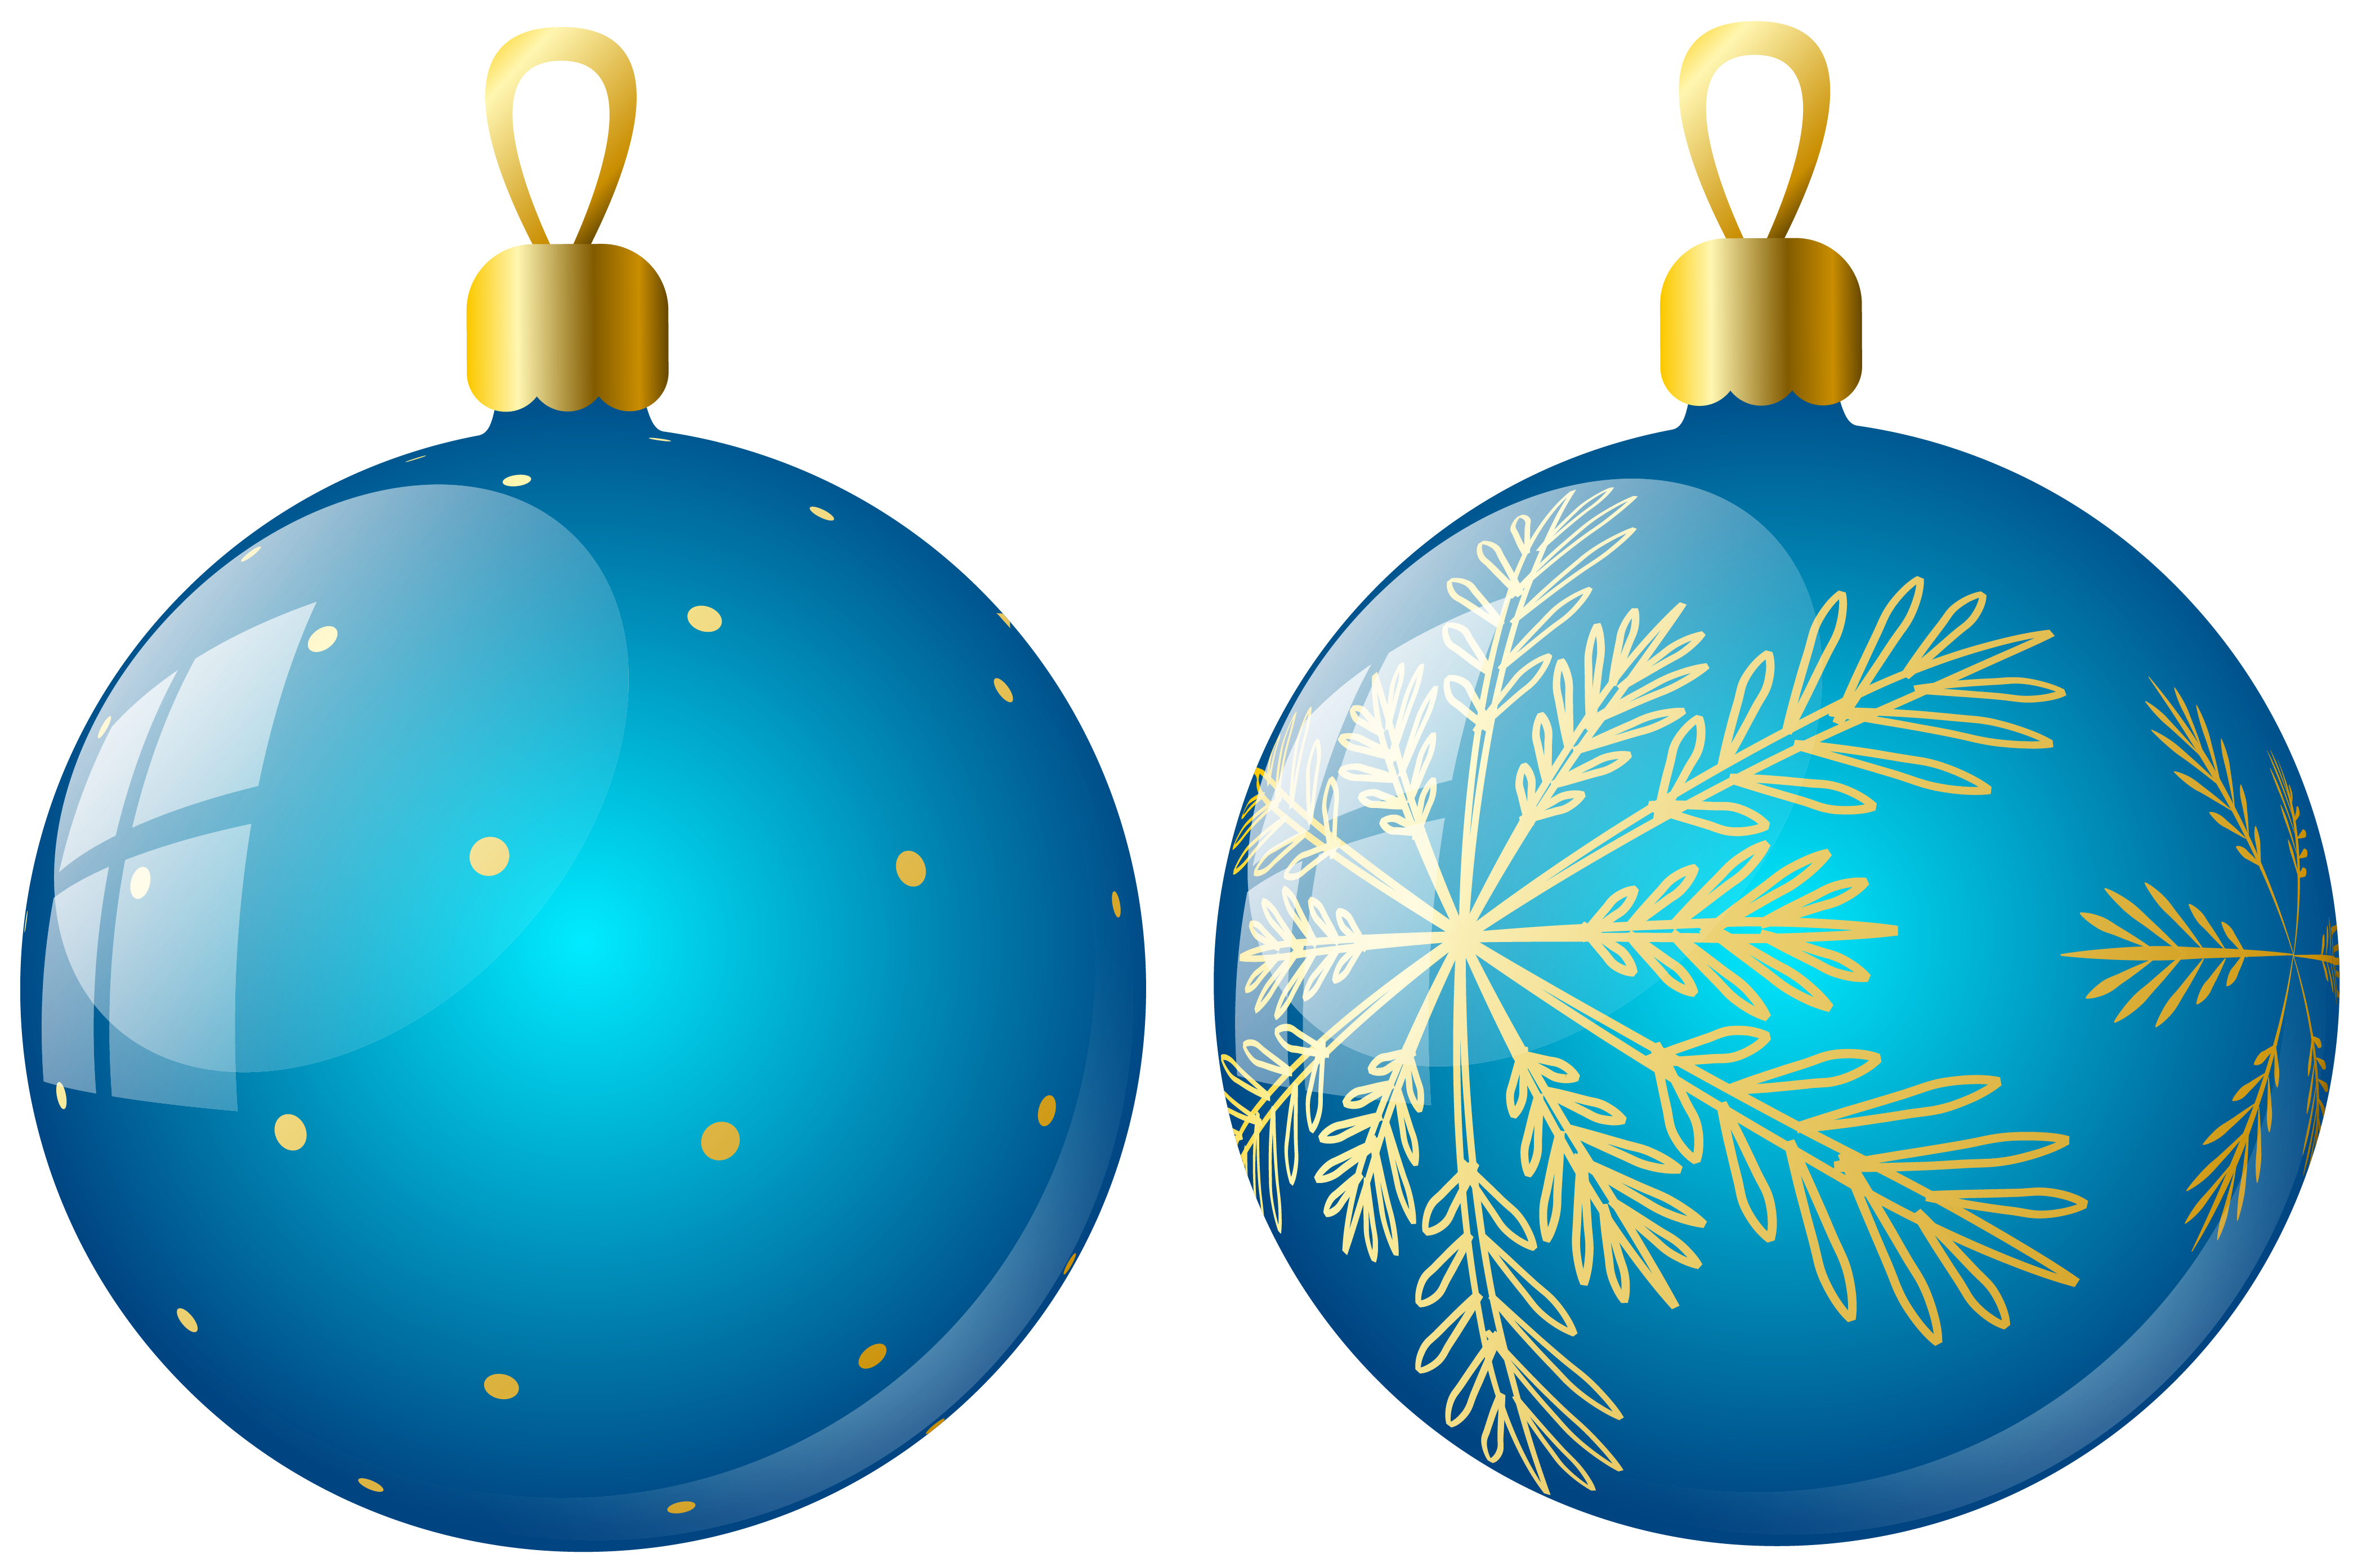 Christmas Ornaments Two Blue Ball Png image #46366